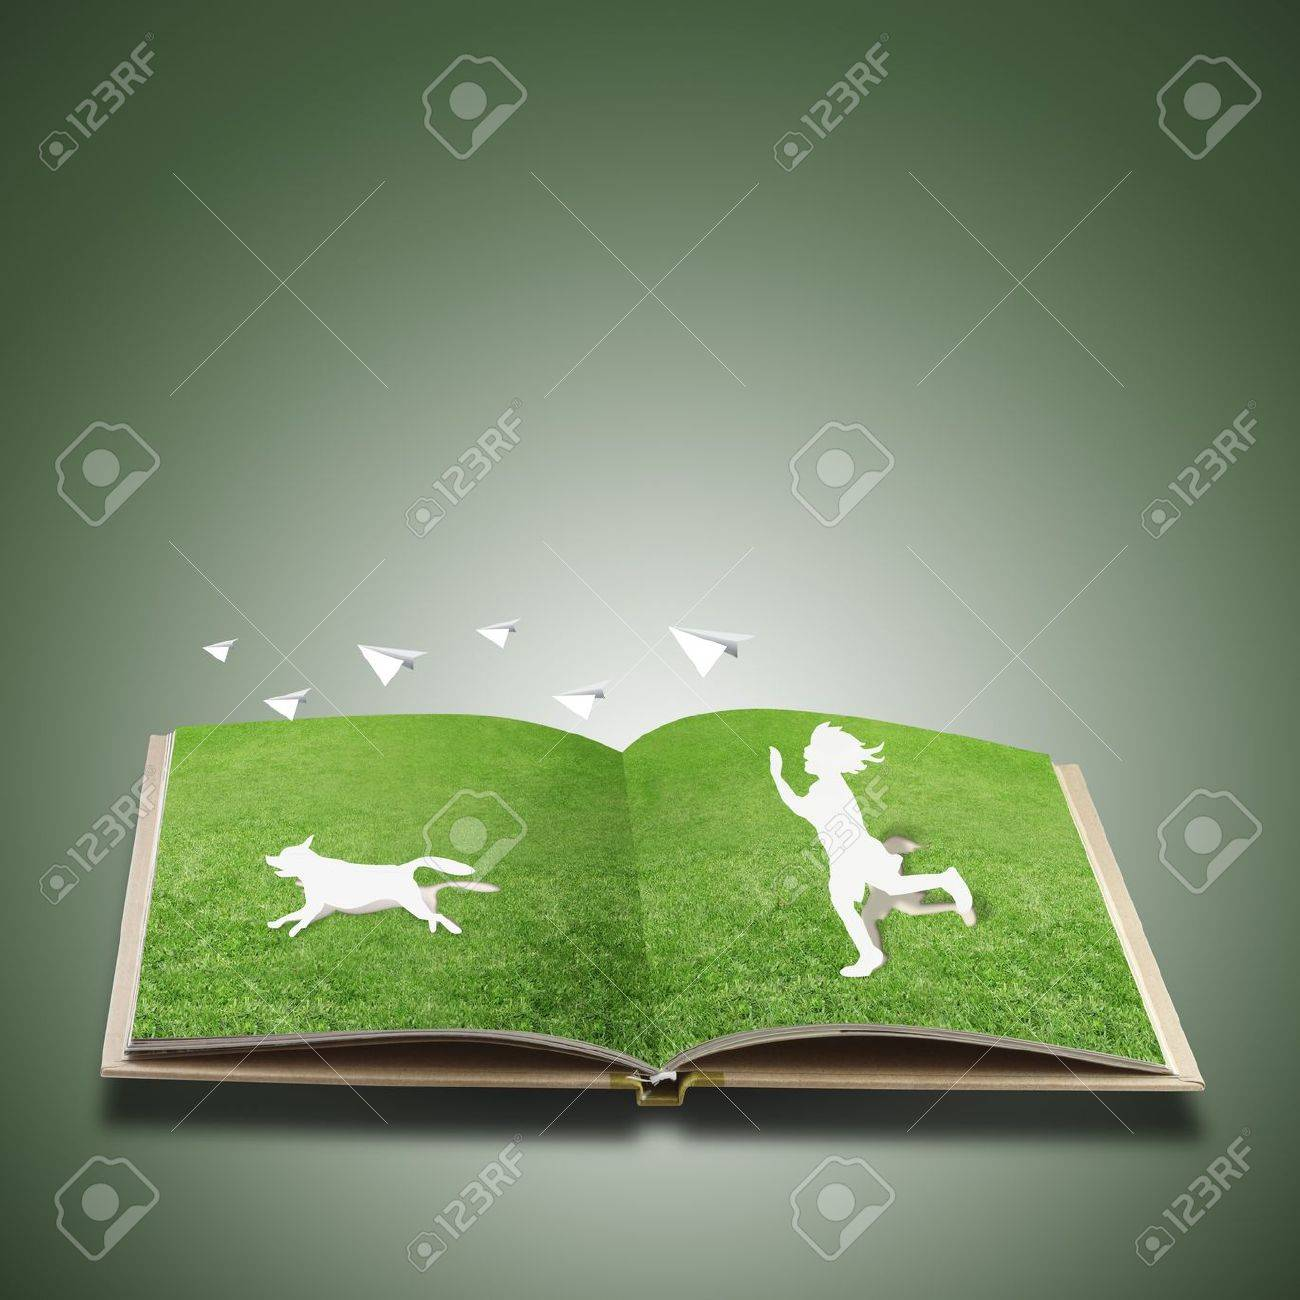 Paper cut of children play on grass book Stock Photo - 12817456